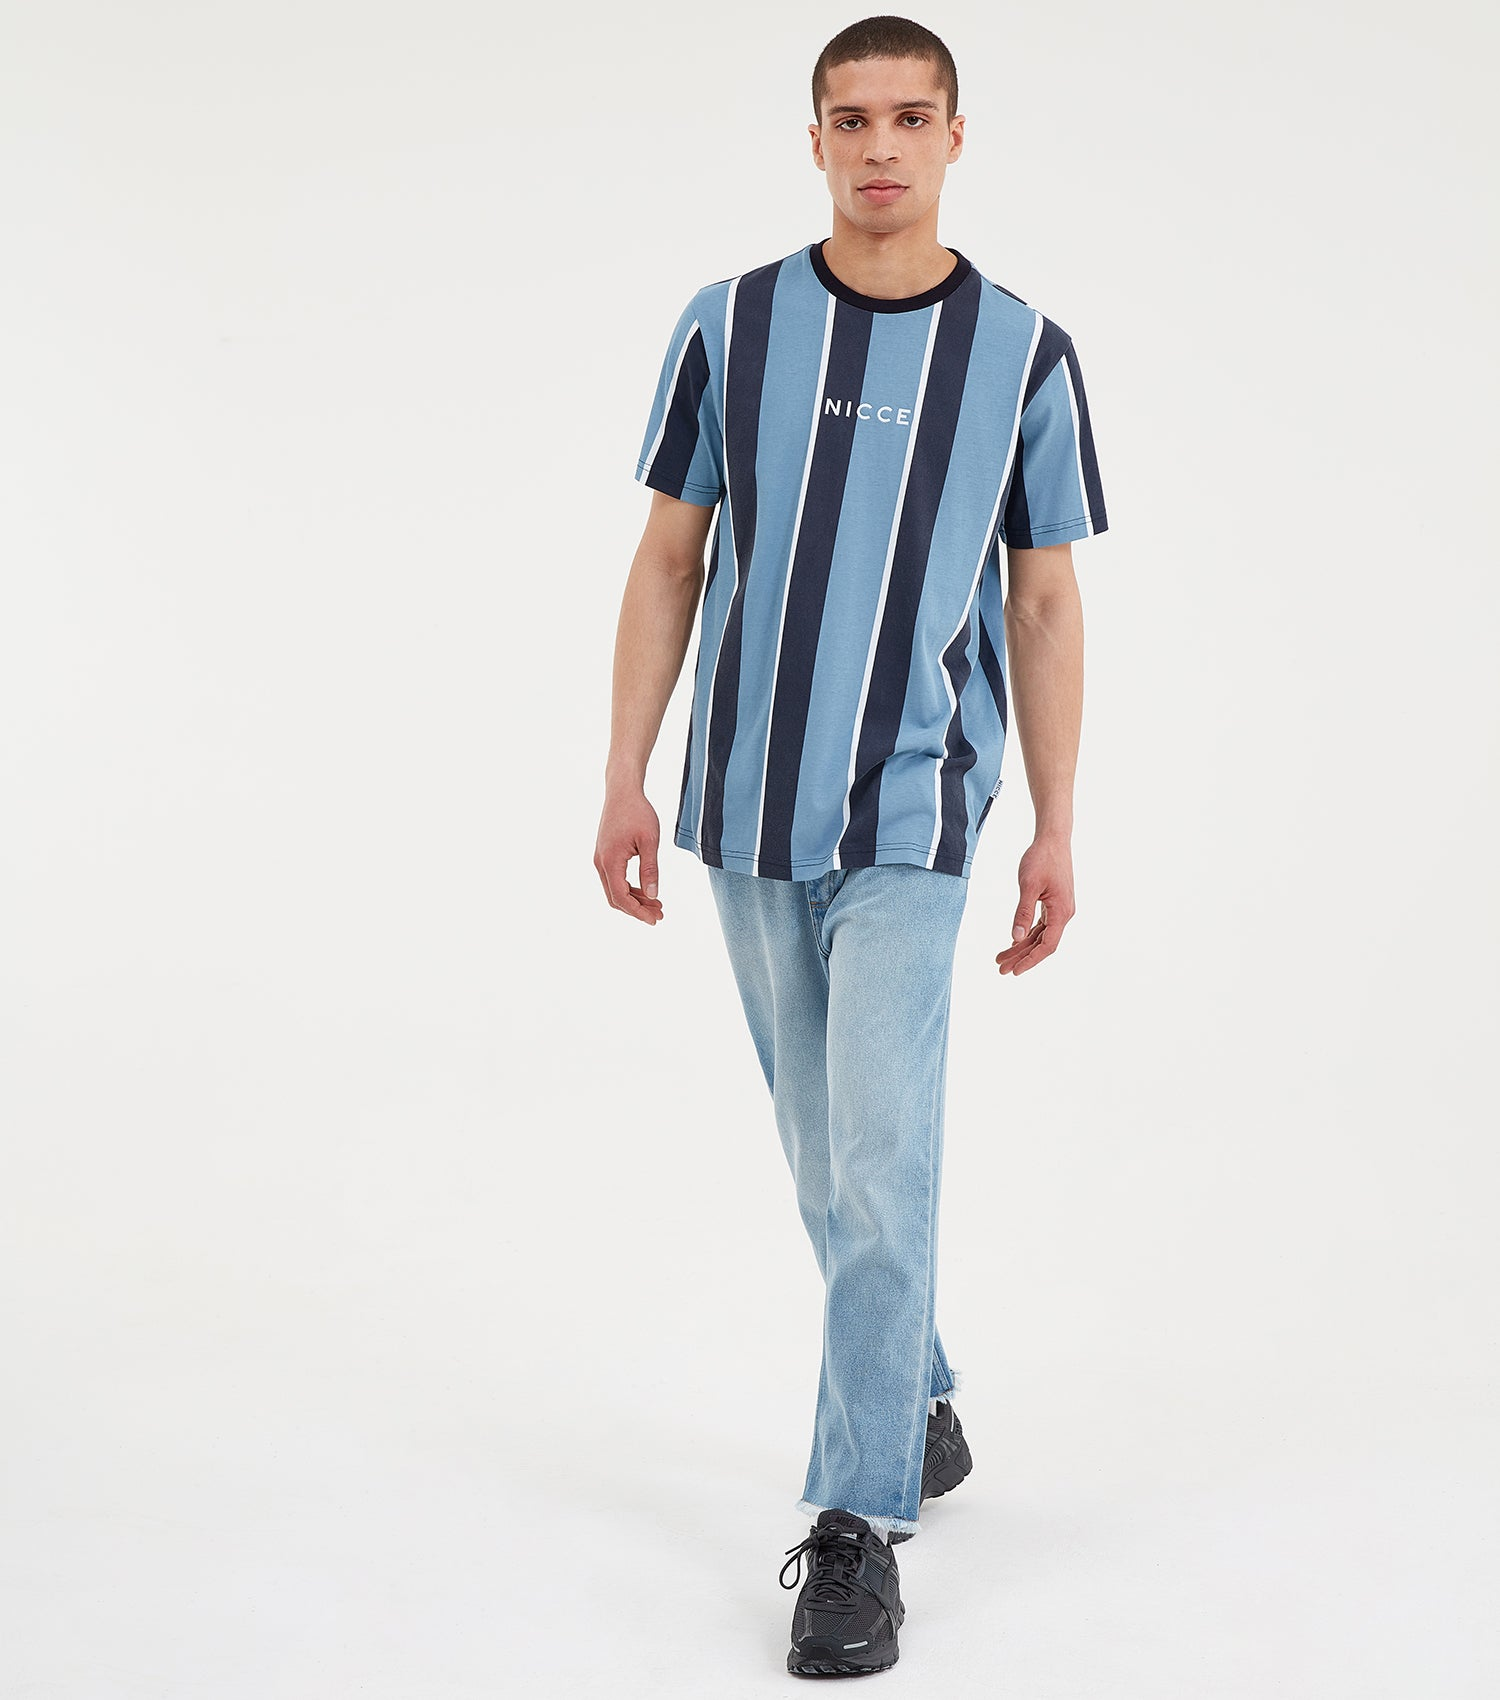 Stripe short sleeve t-shirt in blue. Featuring vertical stripe design in blue, white and navy, crew neck, short sleeves and printed centre logo. Pair with shorts or joggers.